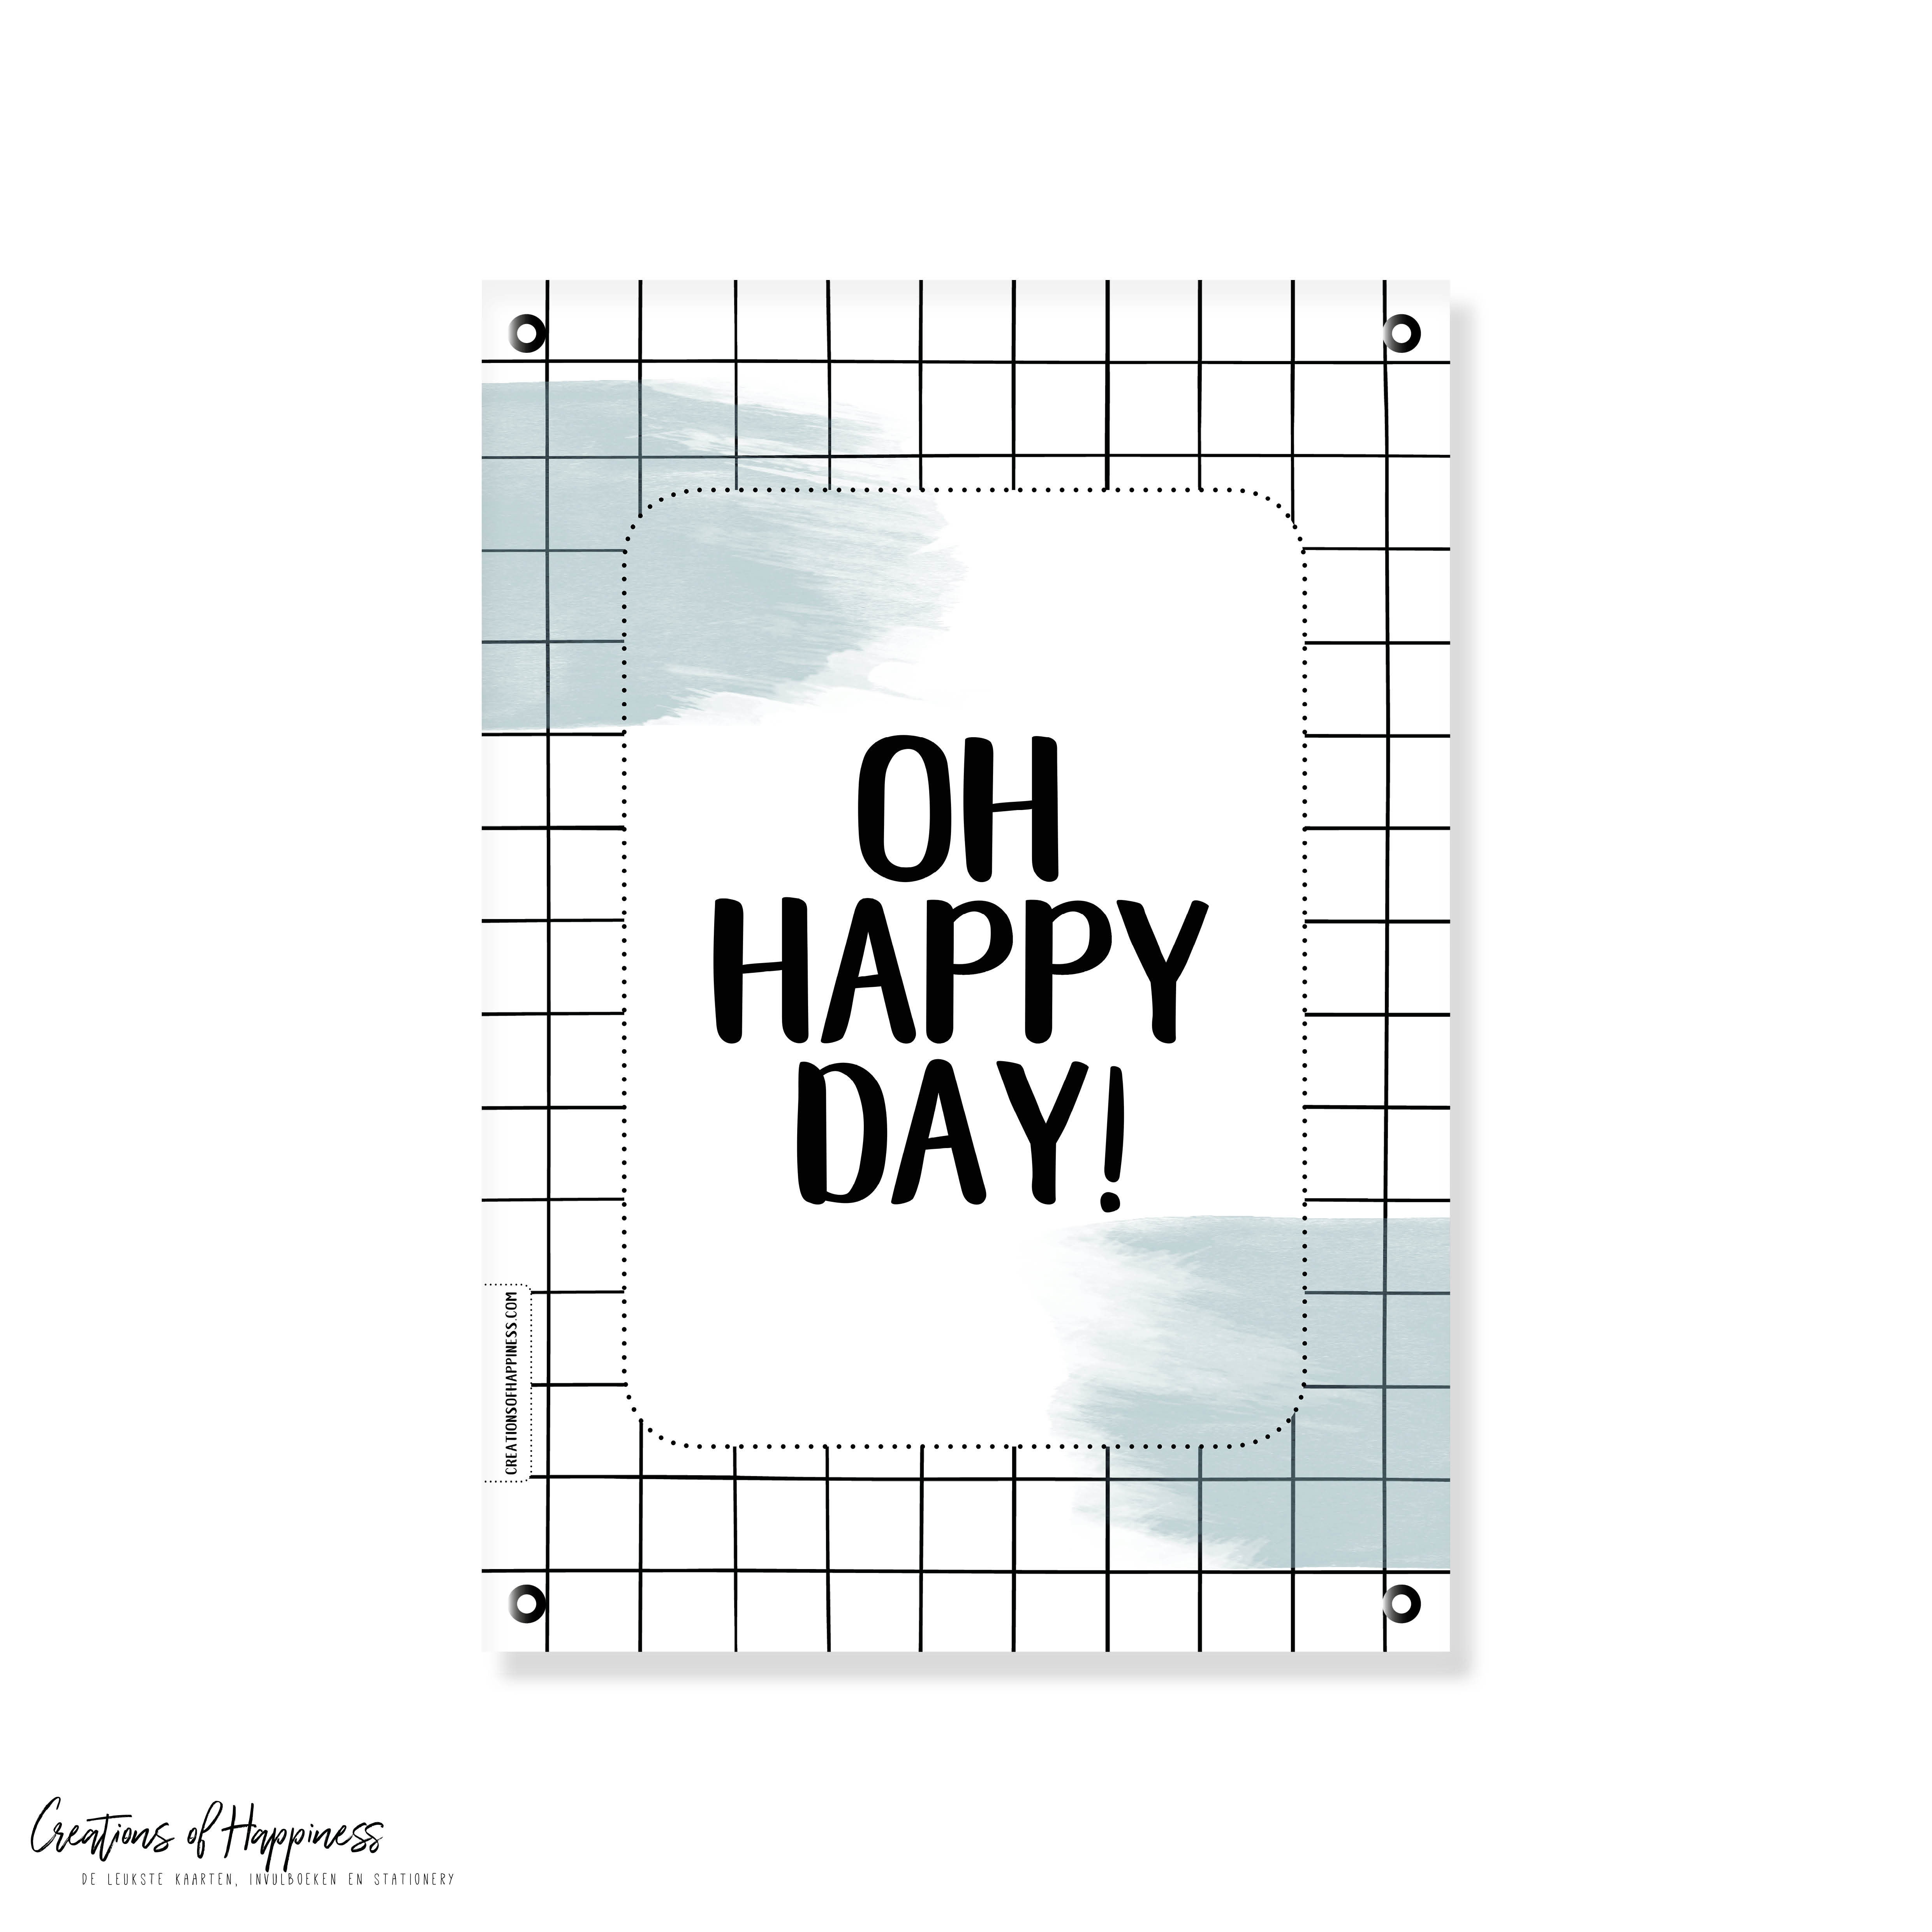 Tuinposter | Oh happy day!